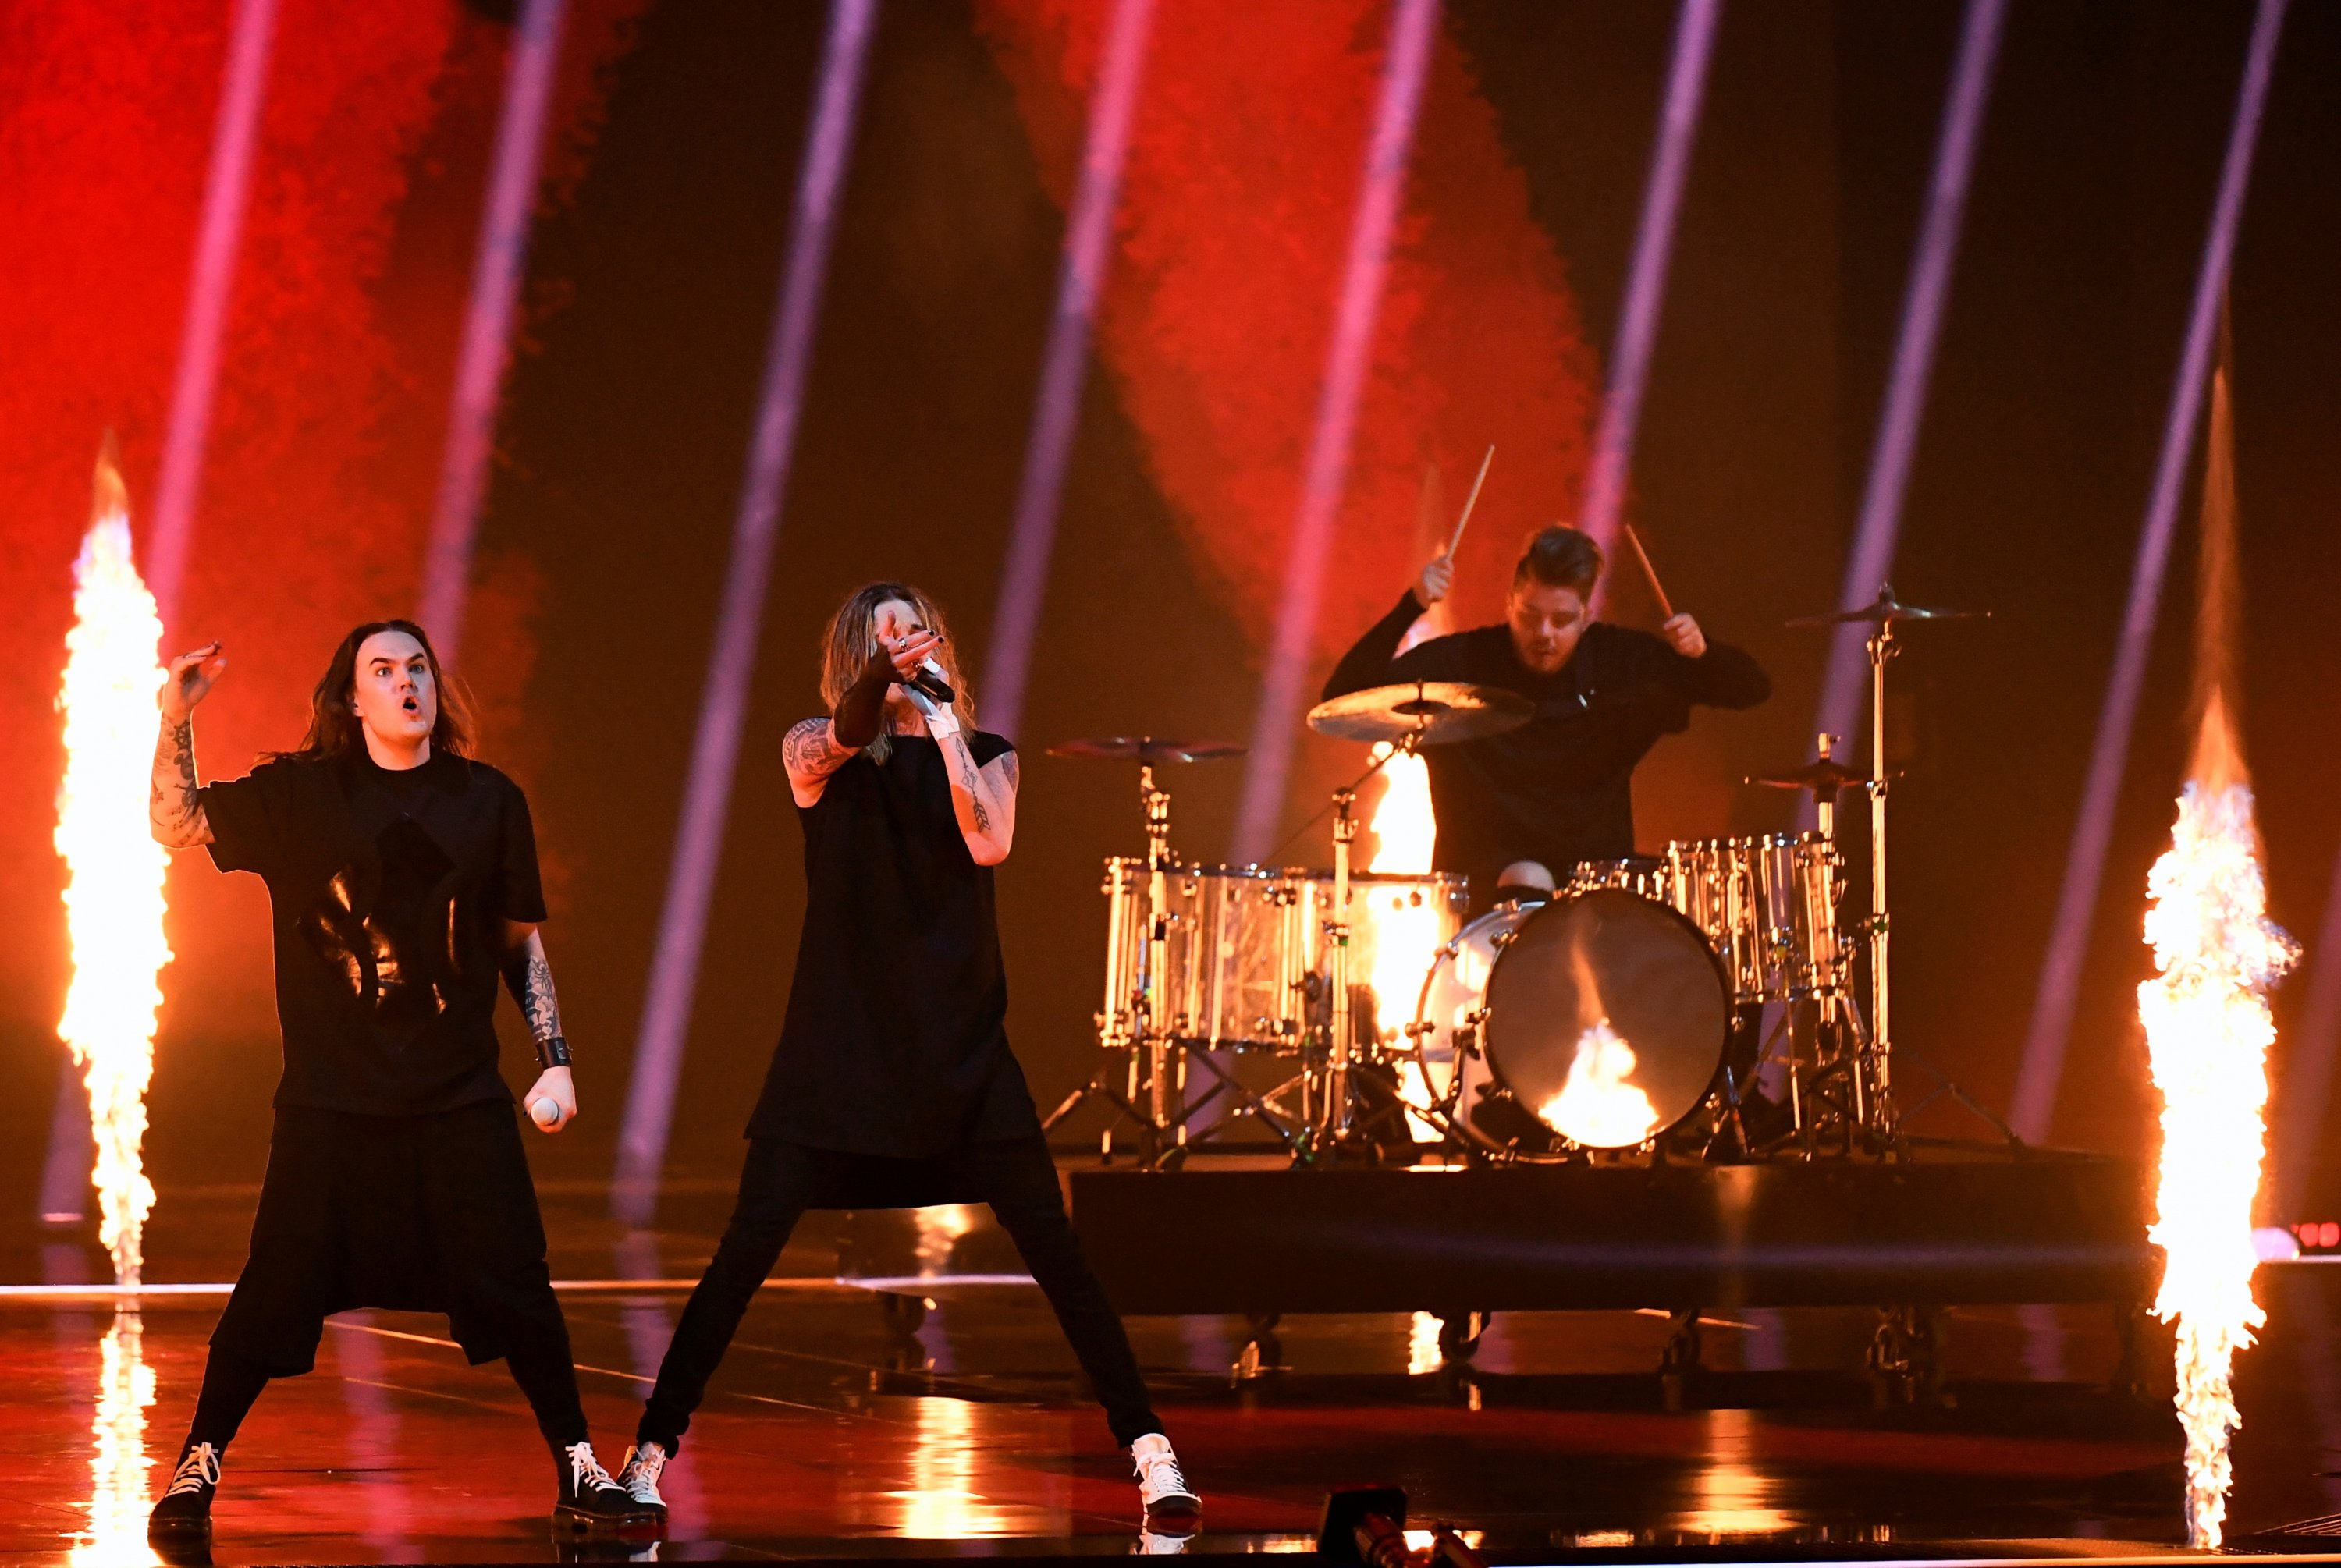 Participant Blind Channel of Finland performs during the Jury Grand Final dress rehearsal of the 2021 Eurovision Song Contest in Rotterdam, the Netherlands, May 21, 2021. (Reuters Photo)